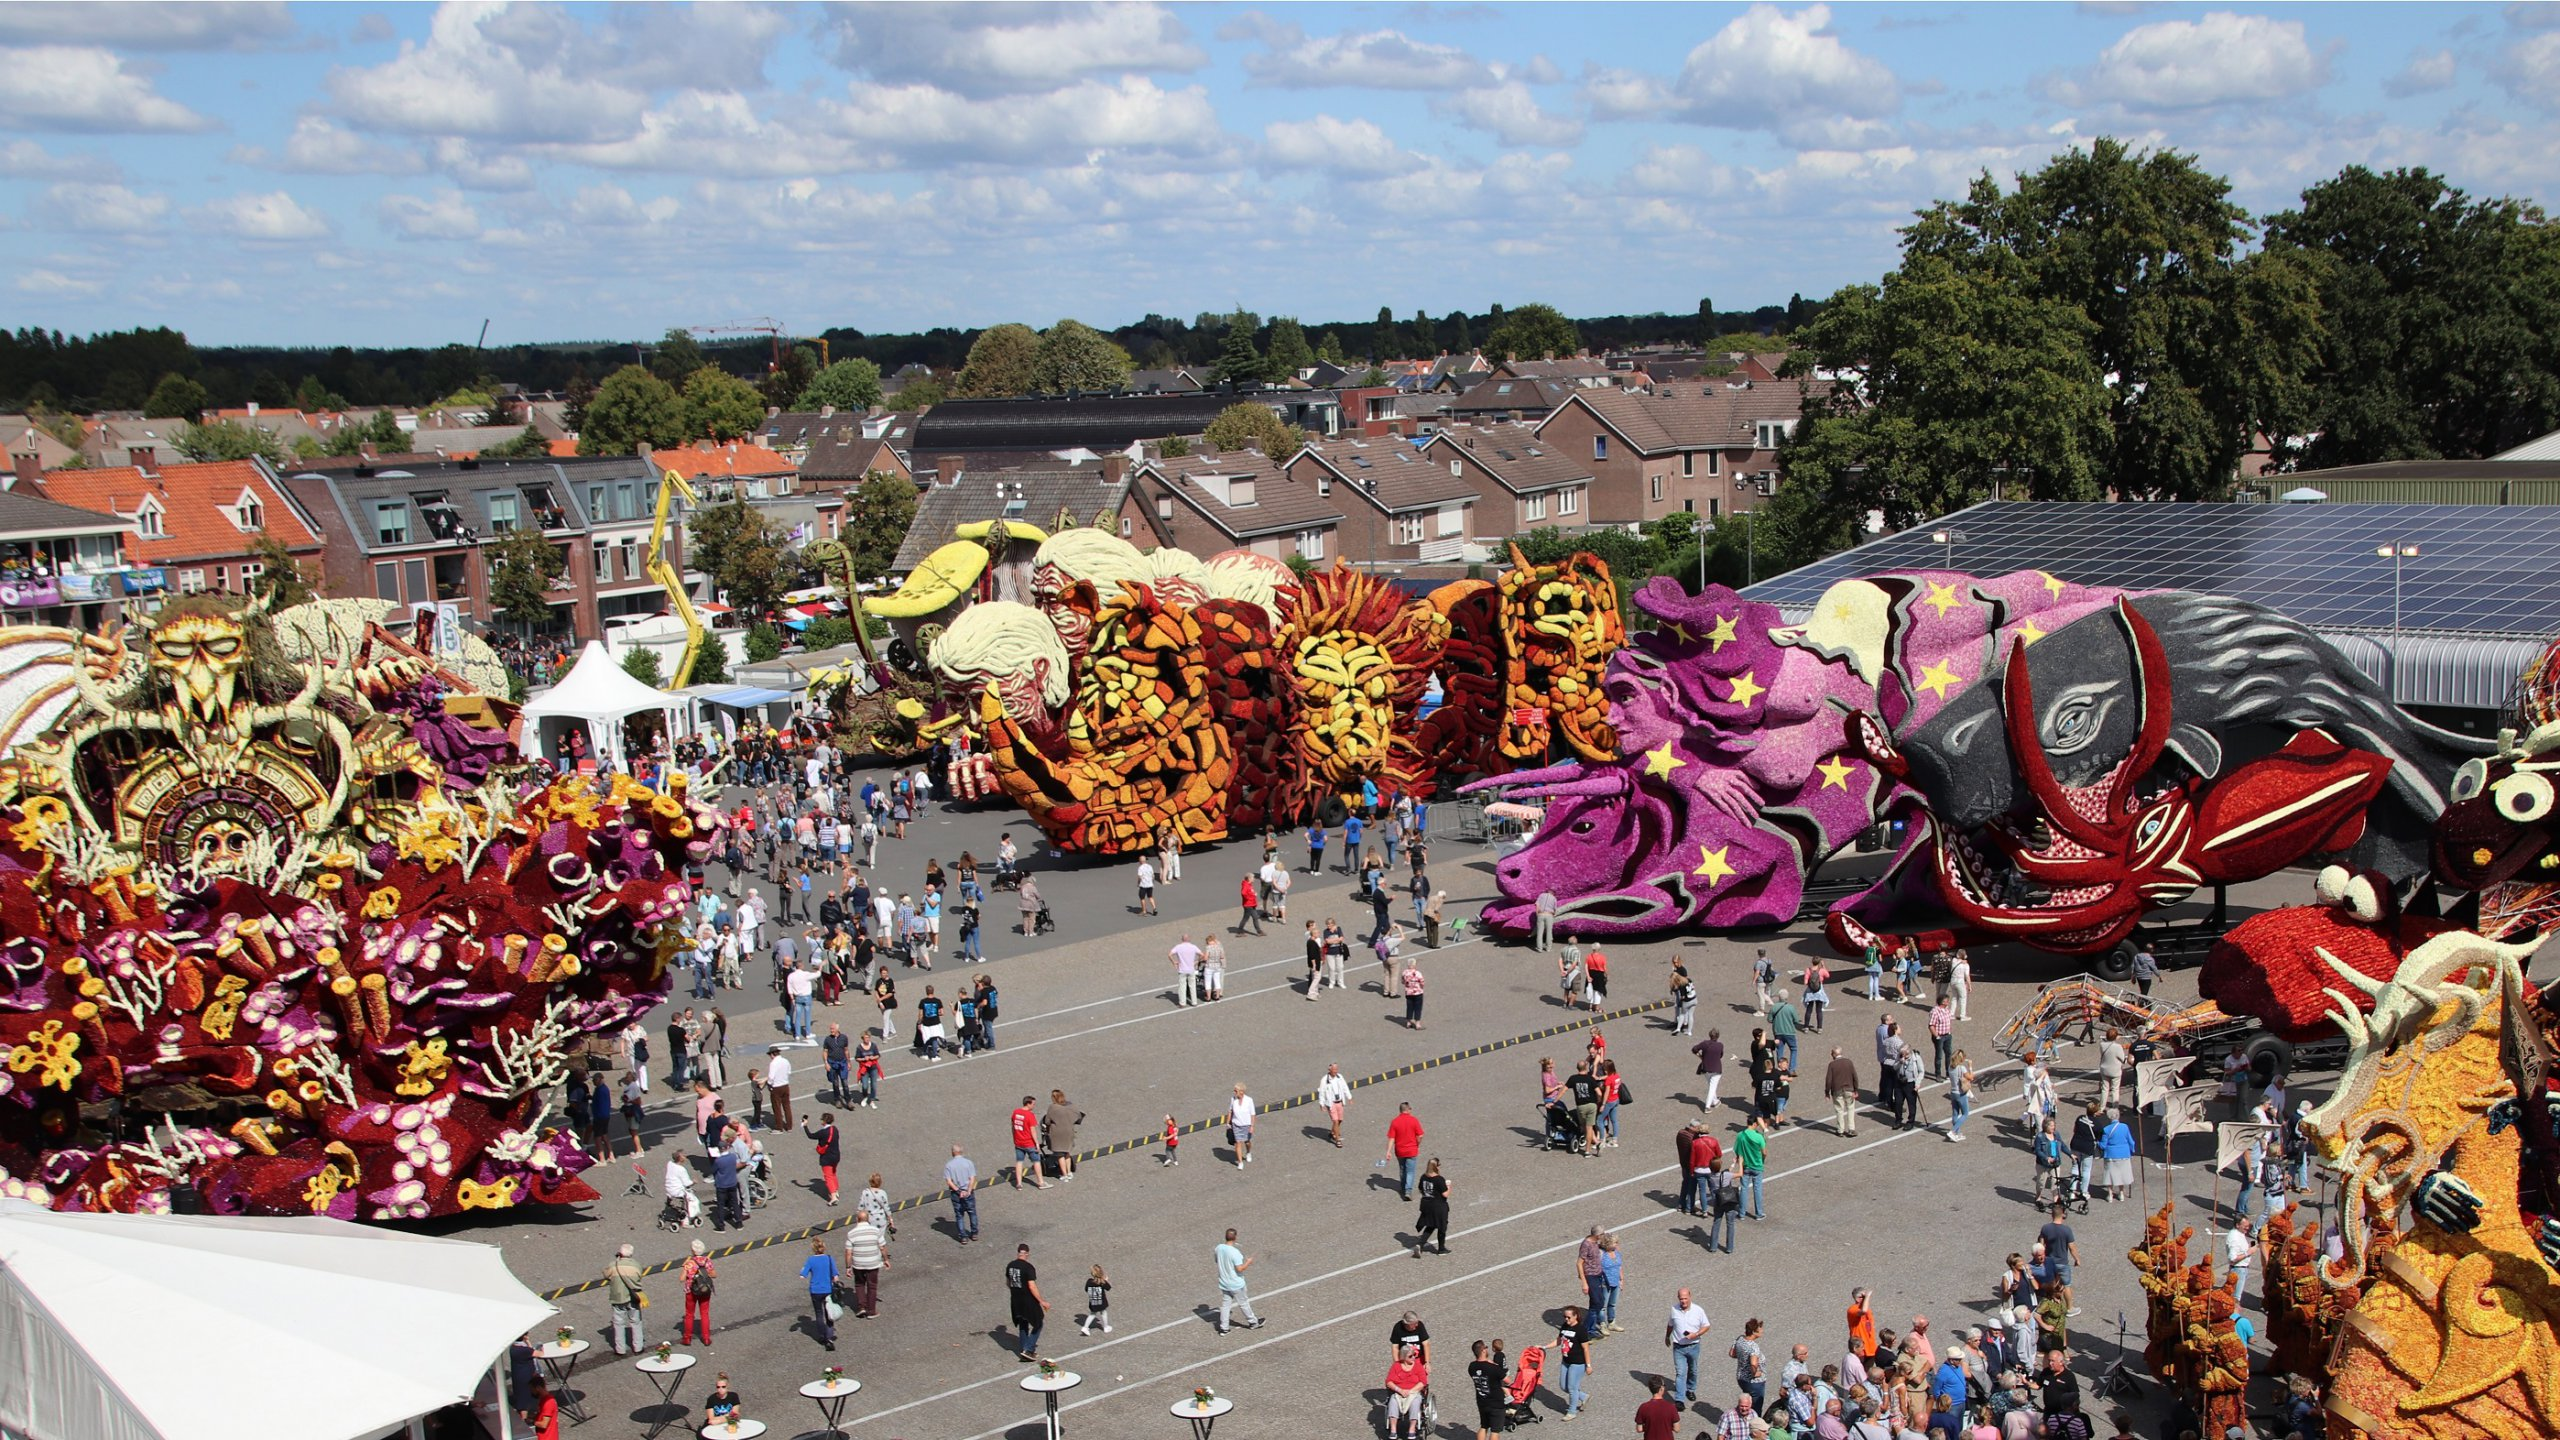 Floats Corso Zundert will be exhibited